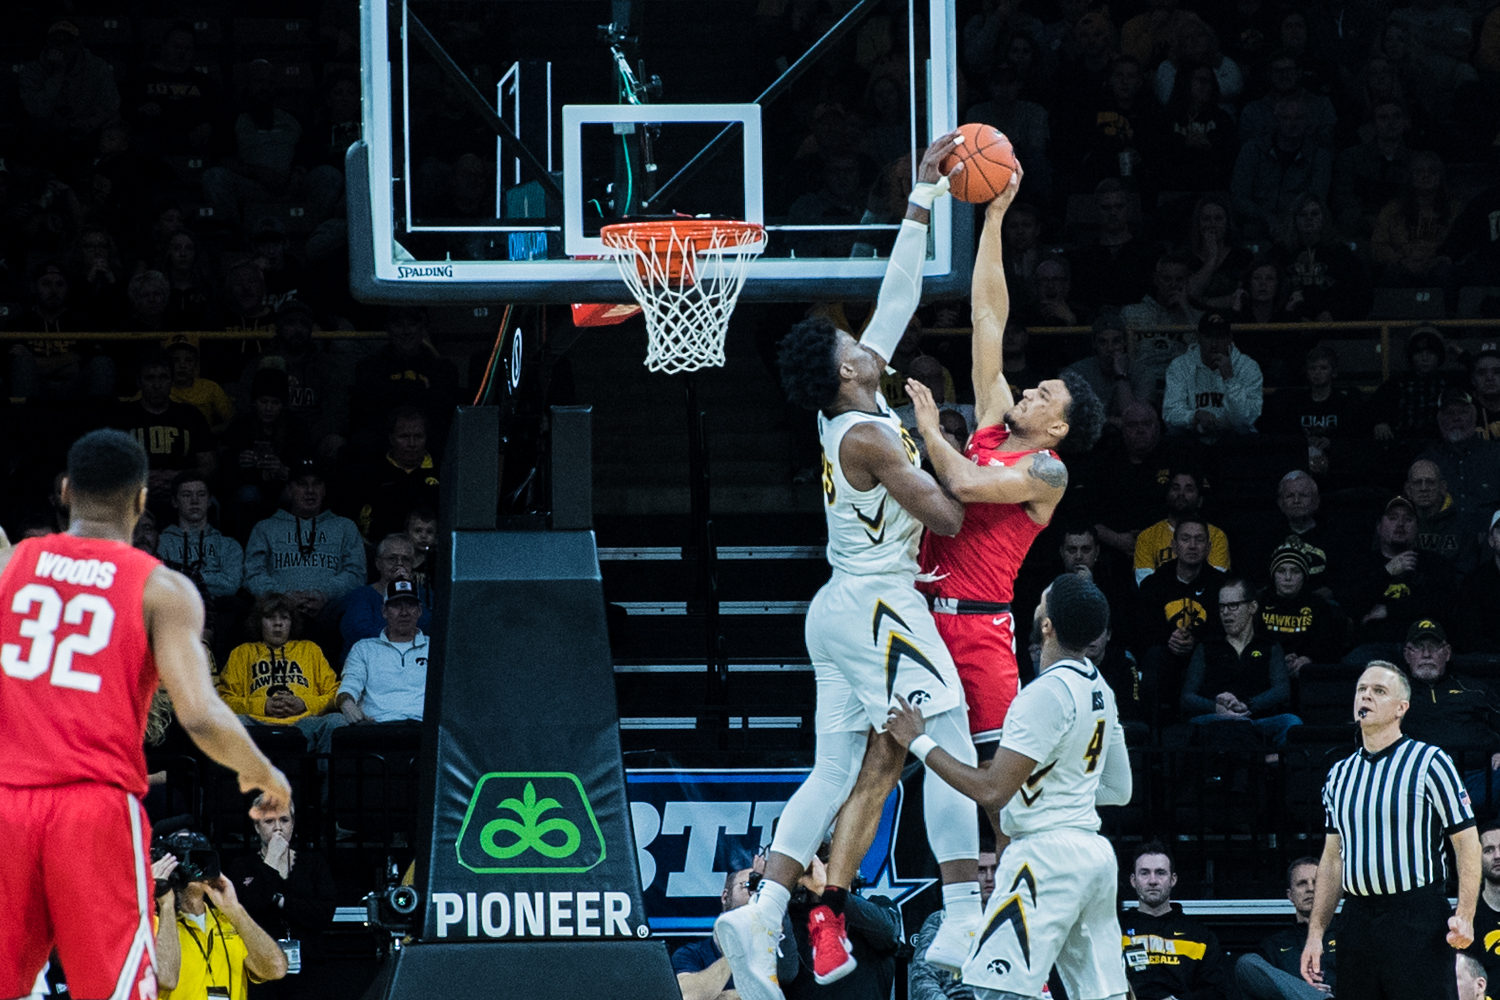 Iowa forward Tyler Cook blocks a layup during a men's basketball matchup between Ohio State and Iowa at Carver-Hawkeye Arena on Saturday, Jan. 12, 2019. The Hawkeyes defeated the Buckeyes, 72-62.